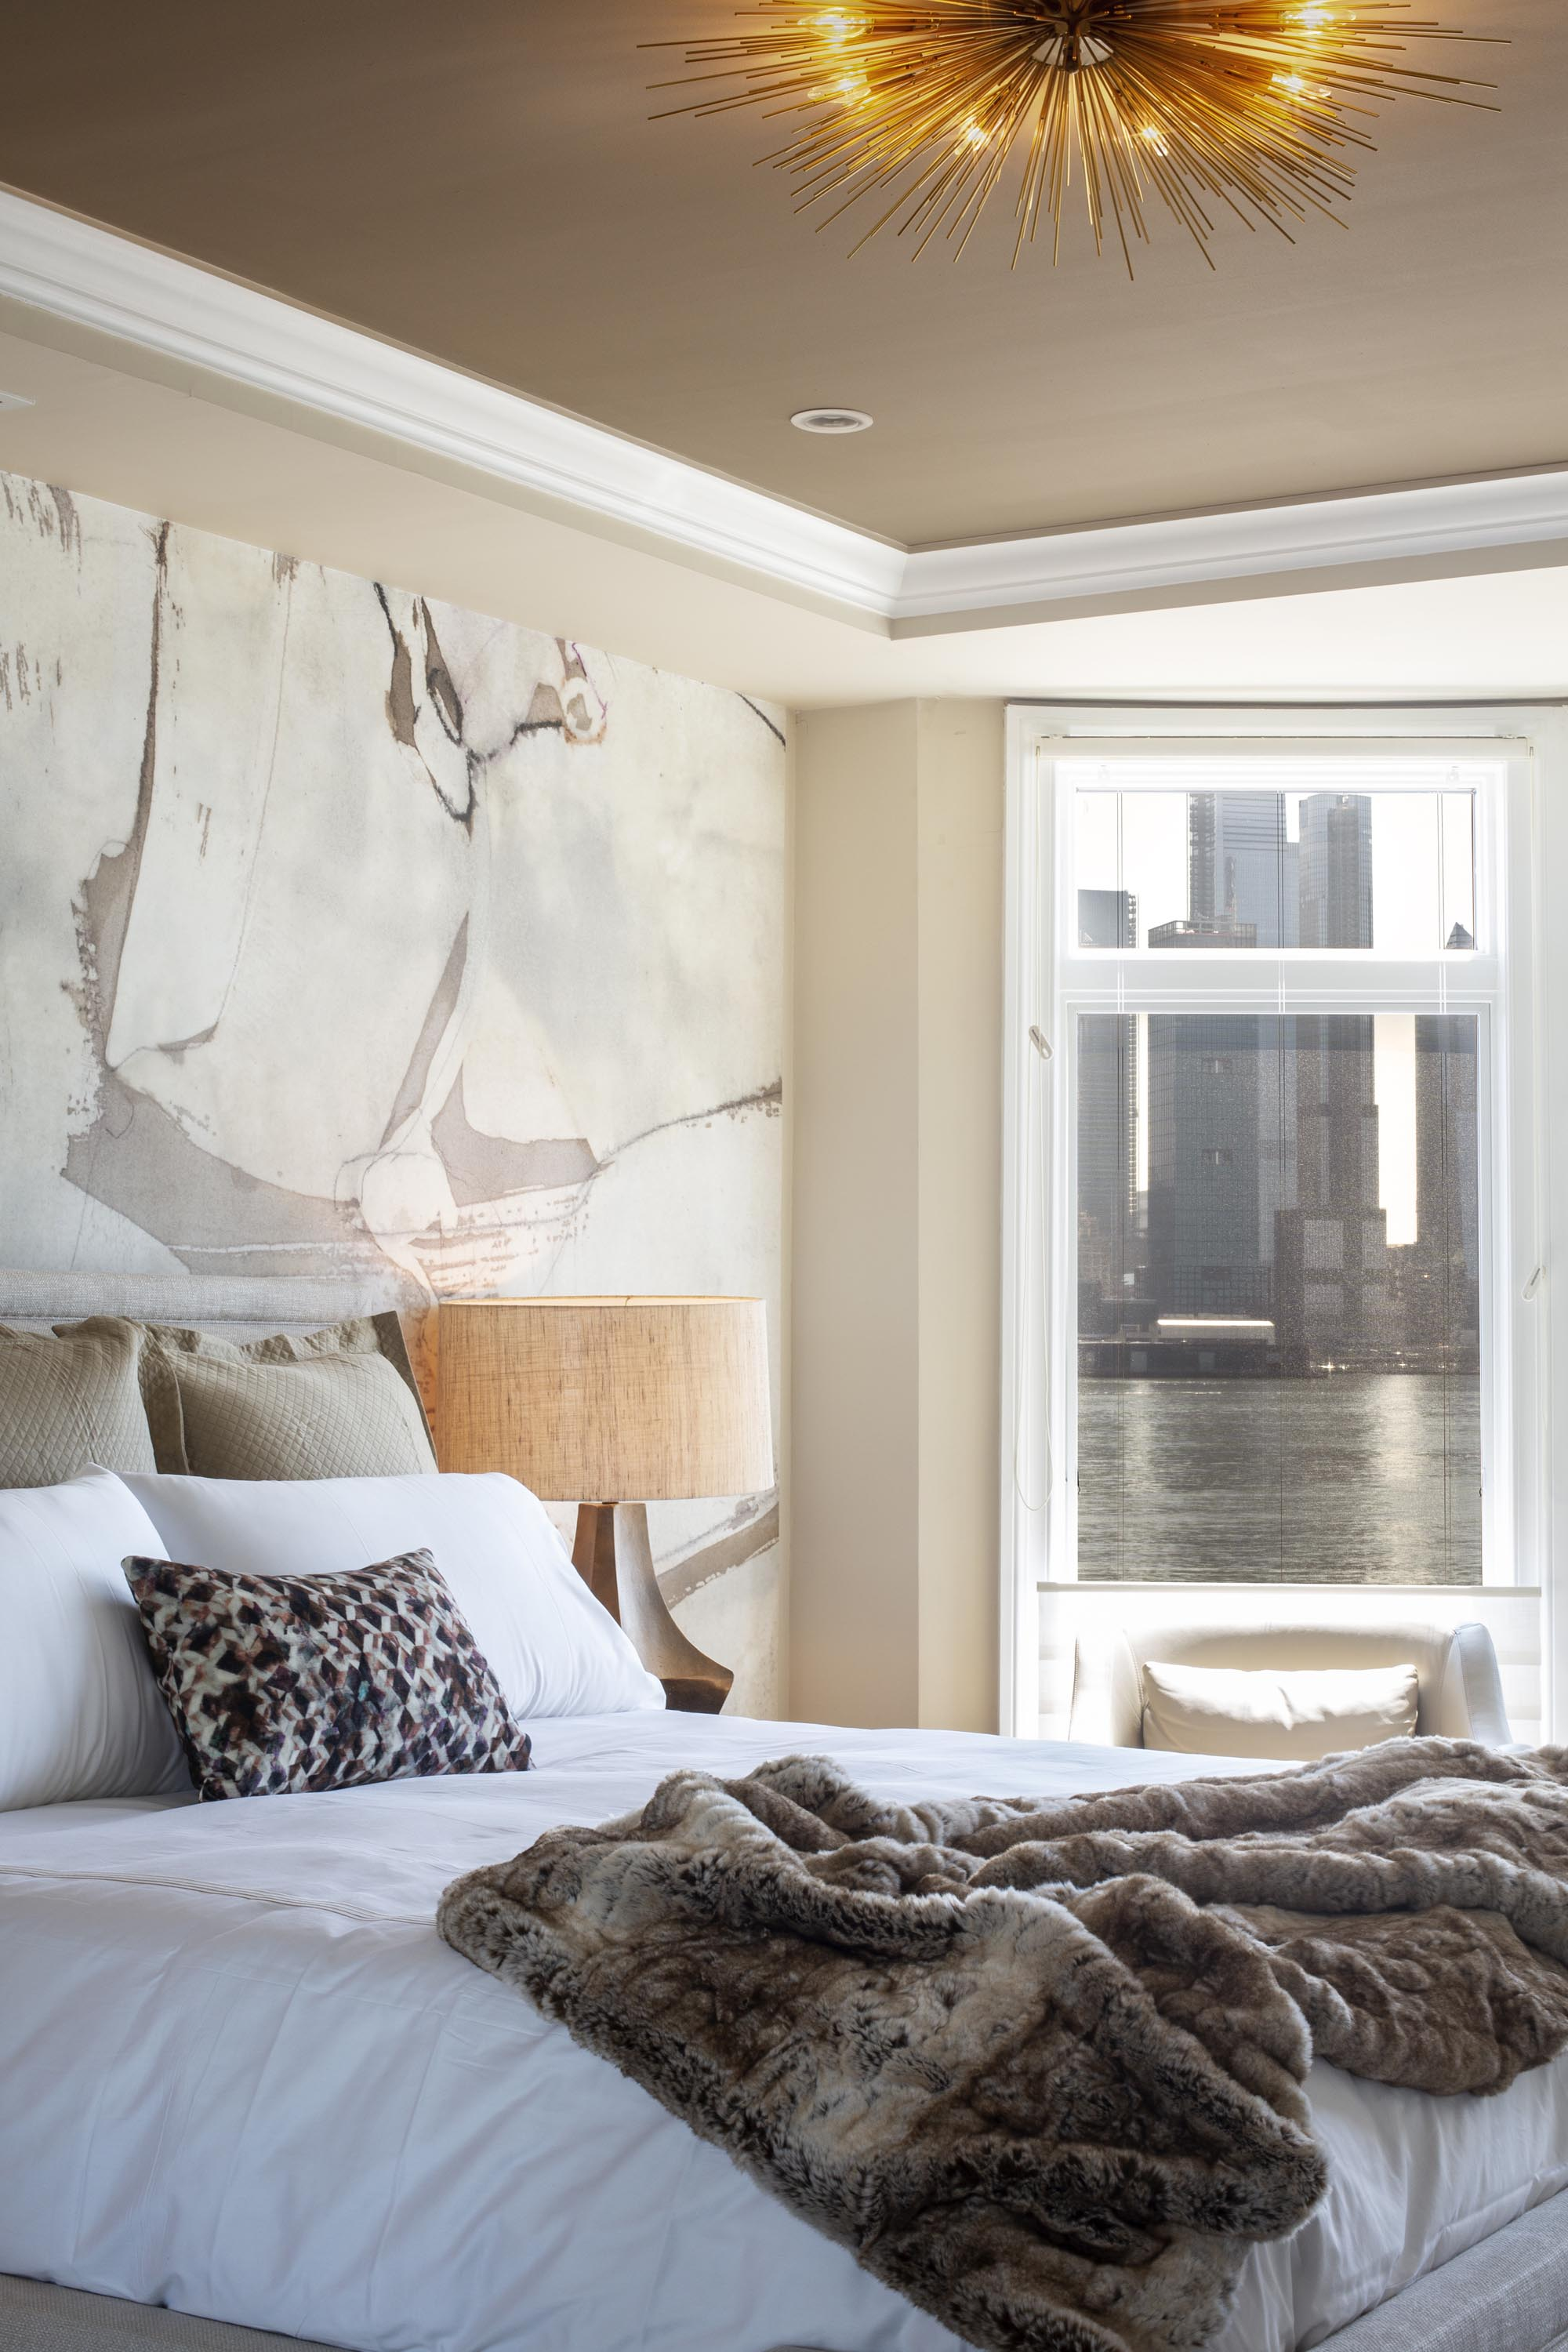 Bedroom with bed, set of pillows, table lamp, modern wallpaper and a white window